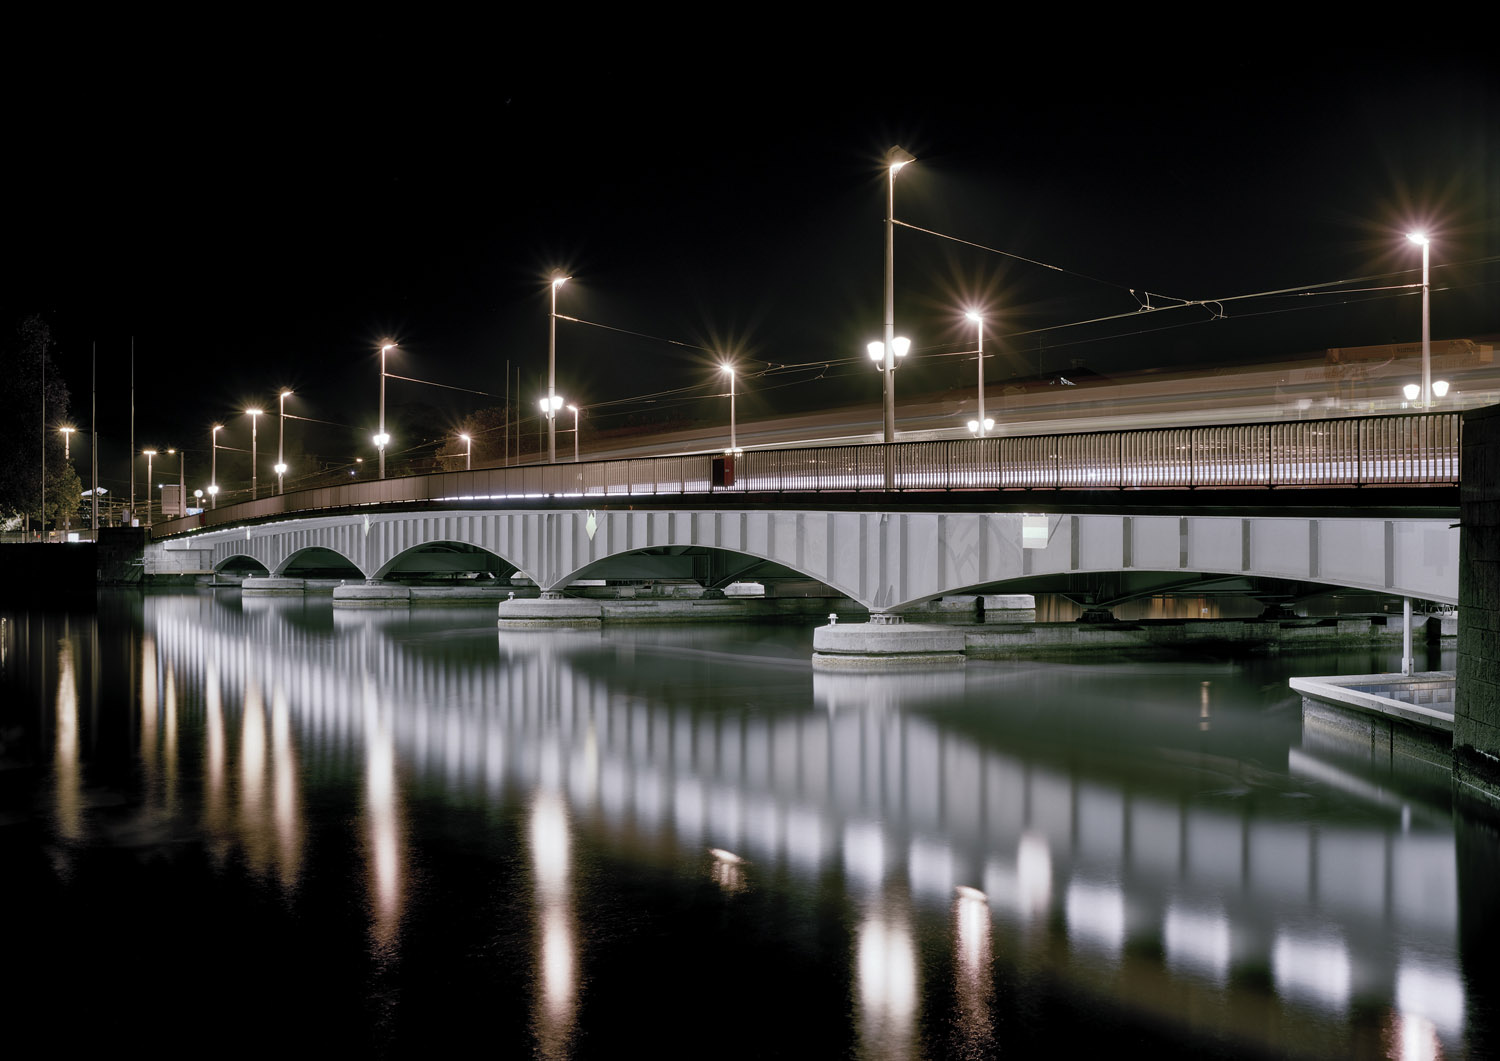 Quaibrücke bridge by night